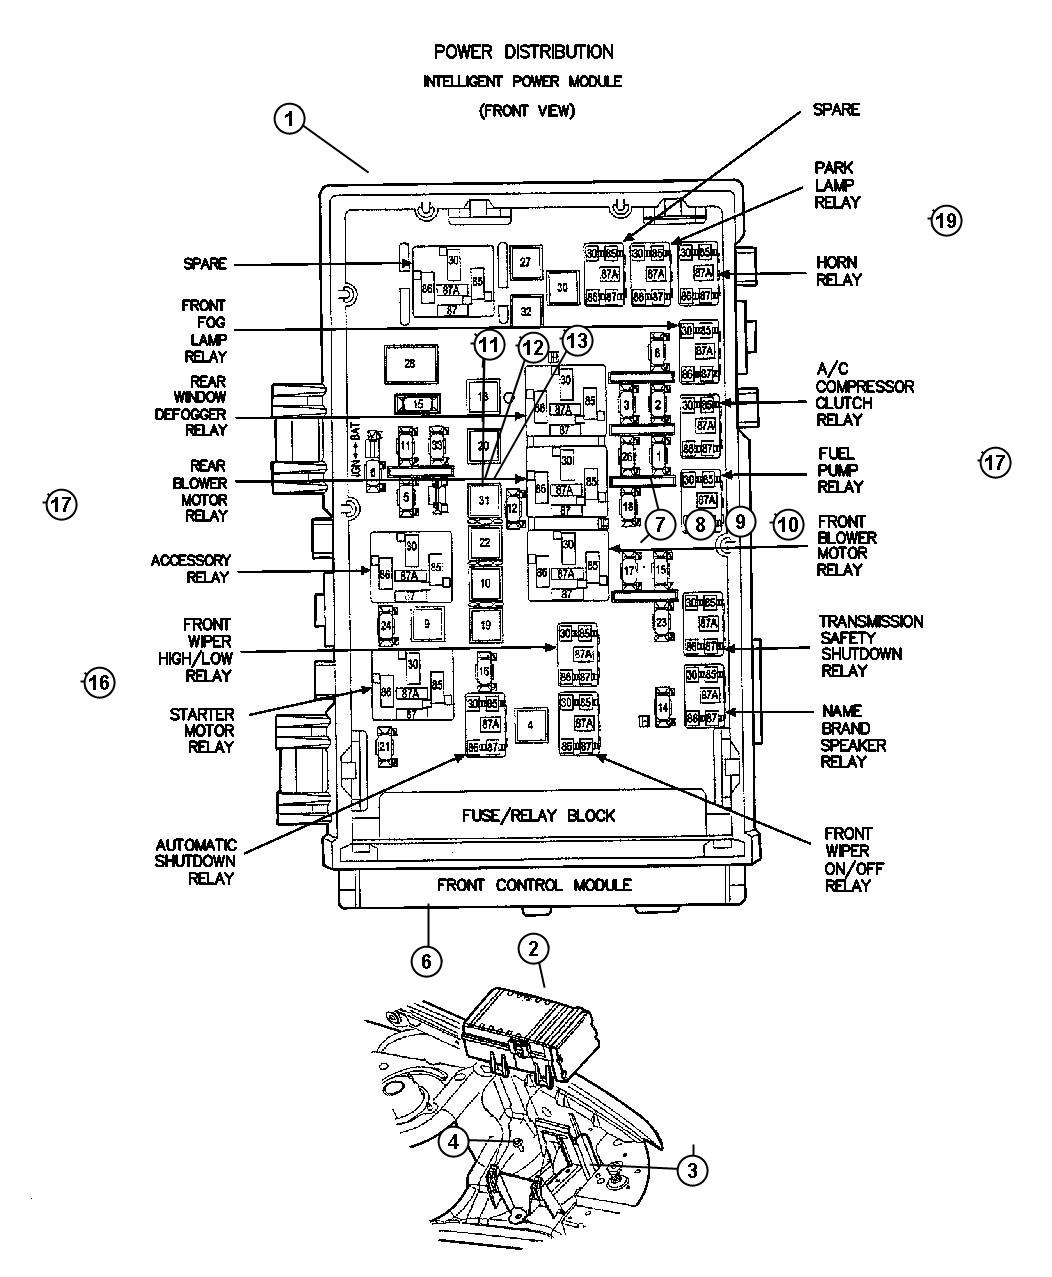 Showthread besides Replace besides 1980 Ford F100 Wiring Diagram also Alarmhelp2 besides 2002 Bmw 325ci Fuse Box Diagram. on vw routan fuse box diagram